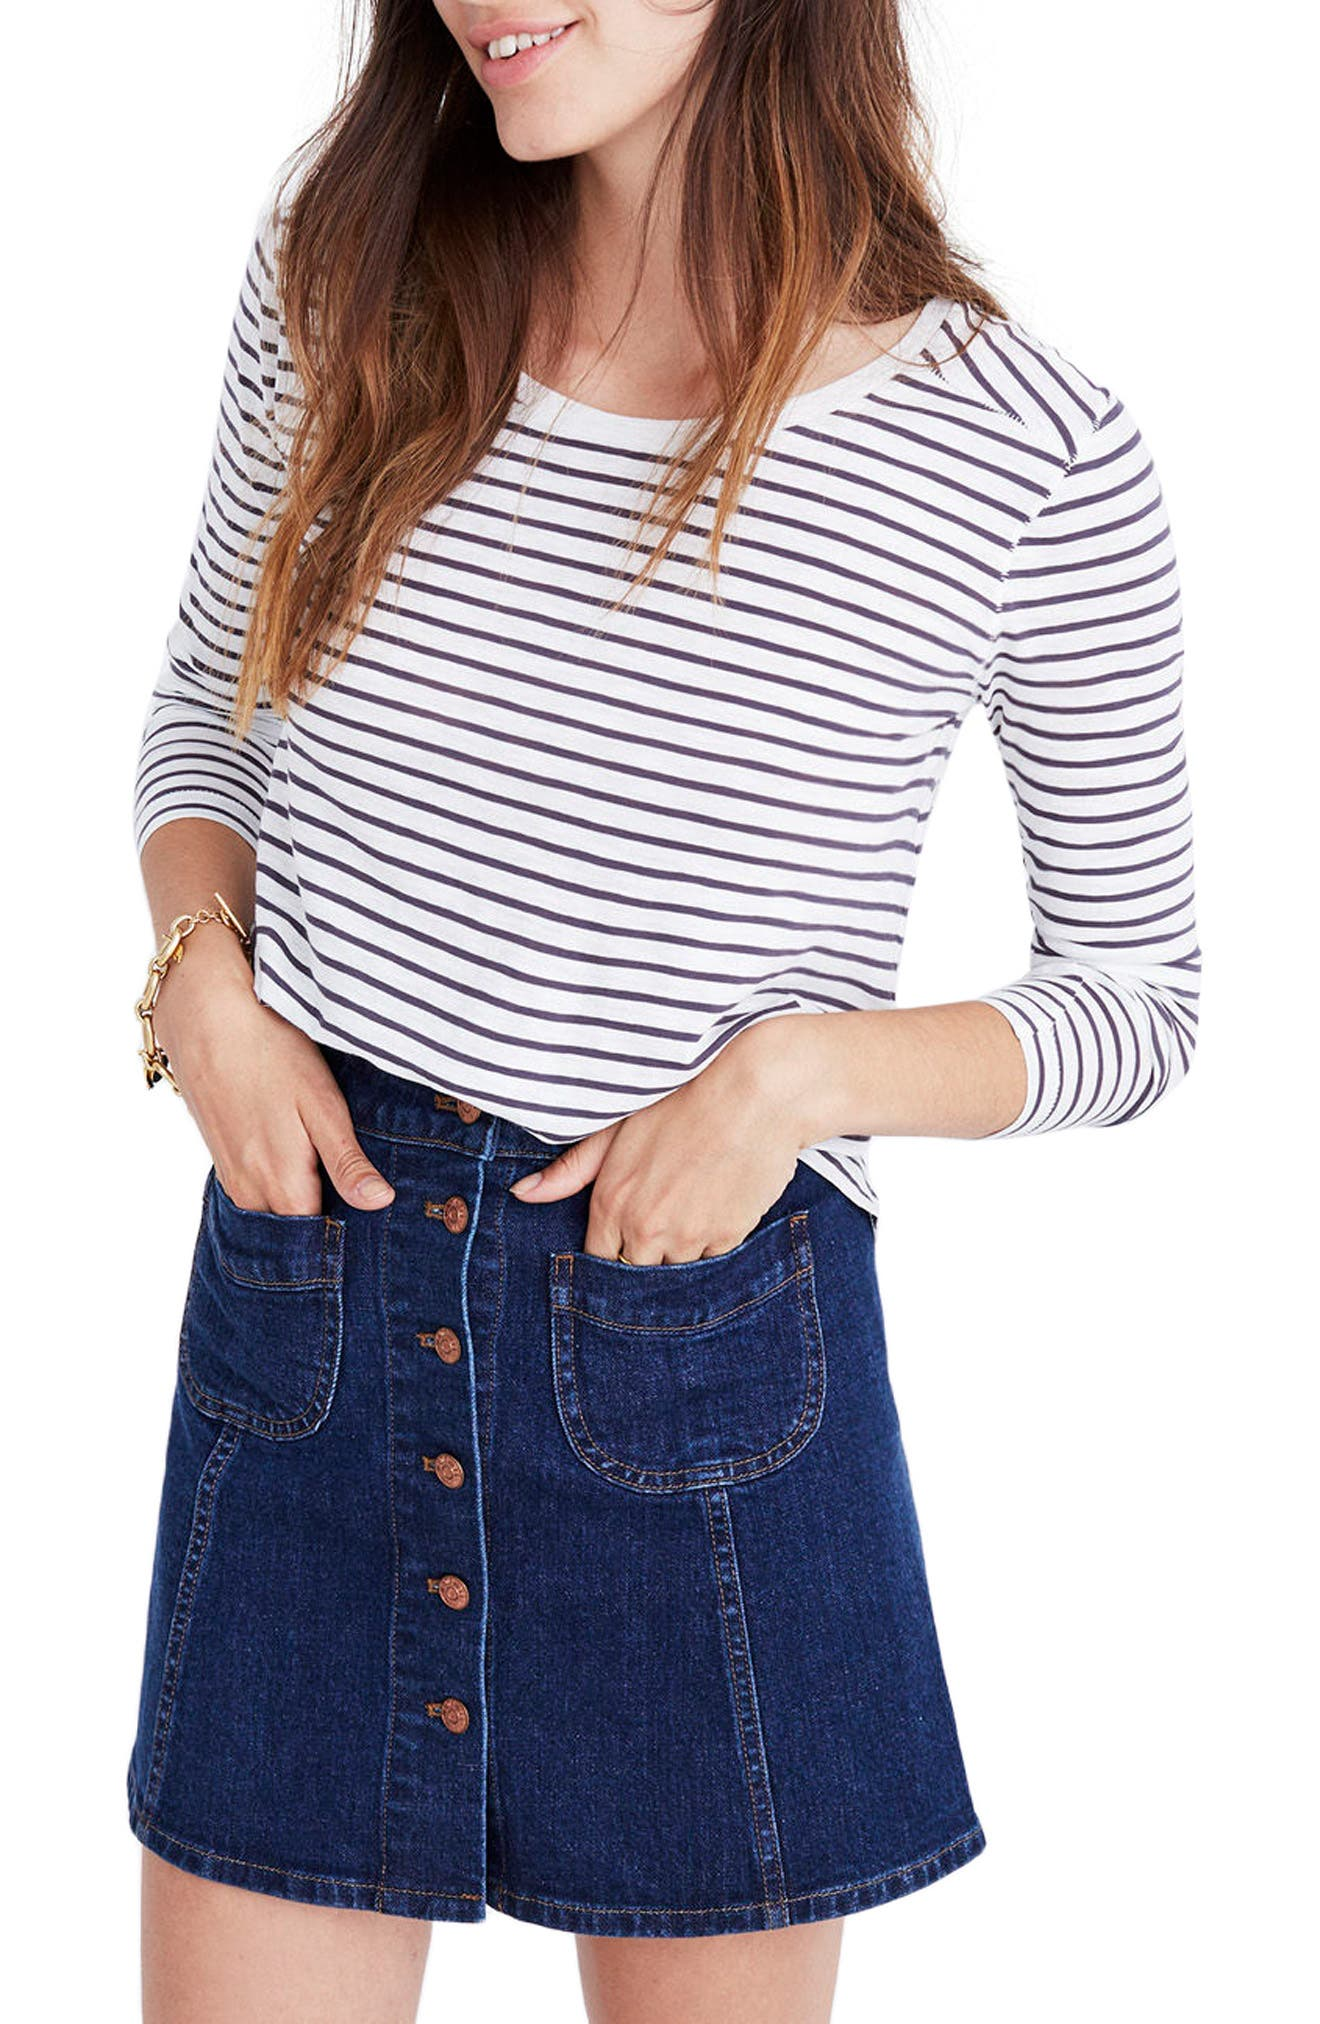 Main Image - Madewell Whisper Cotton Stripe Long Sleeve Tee